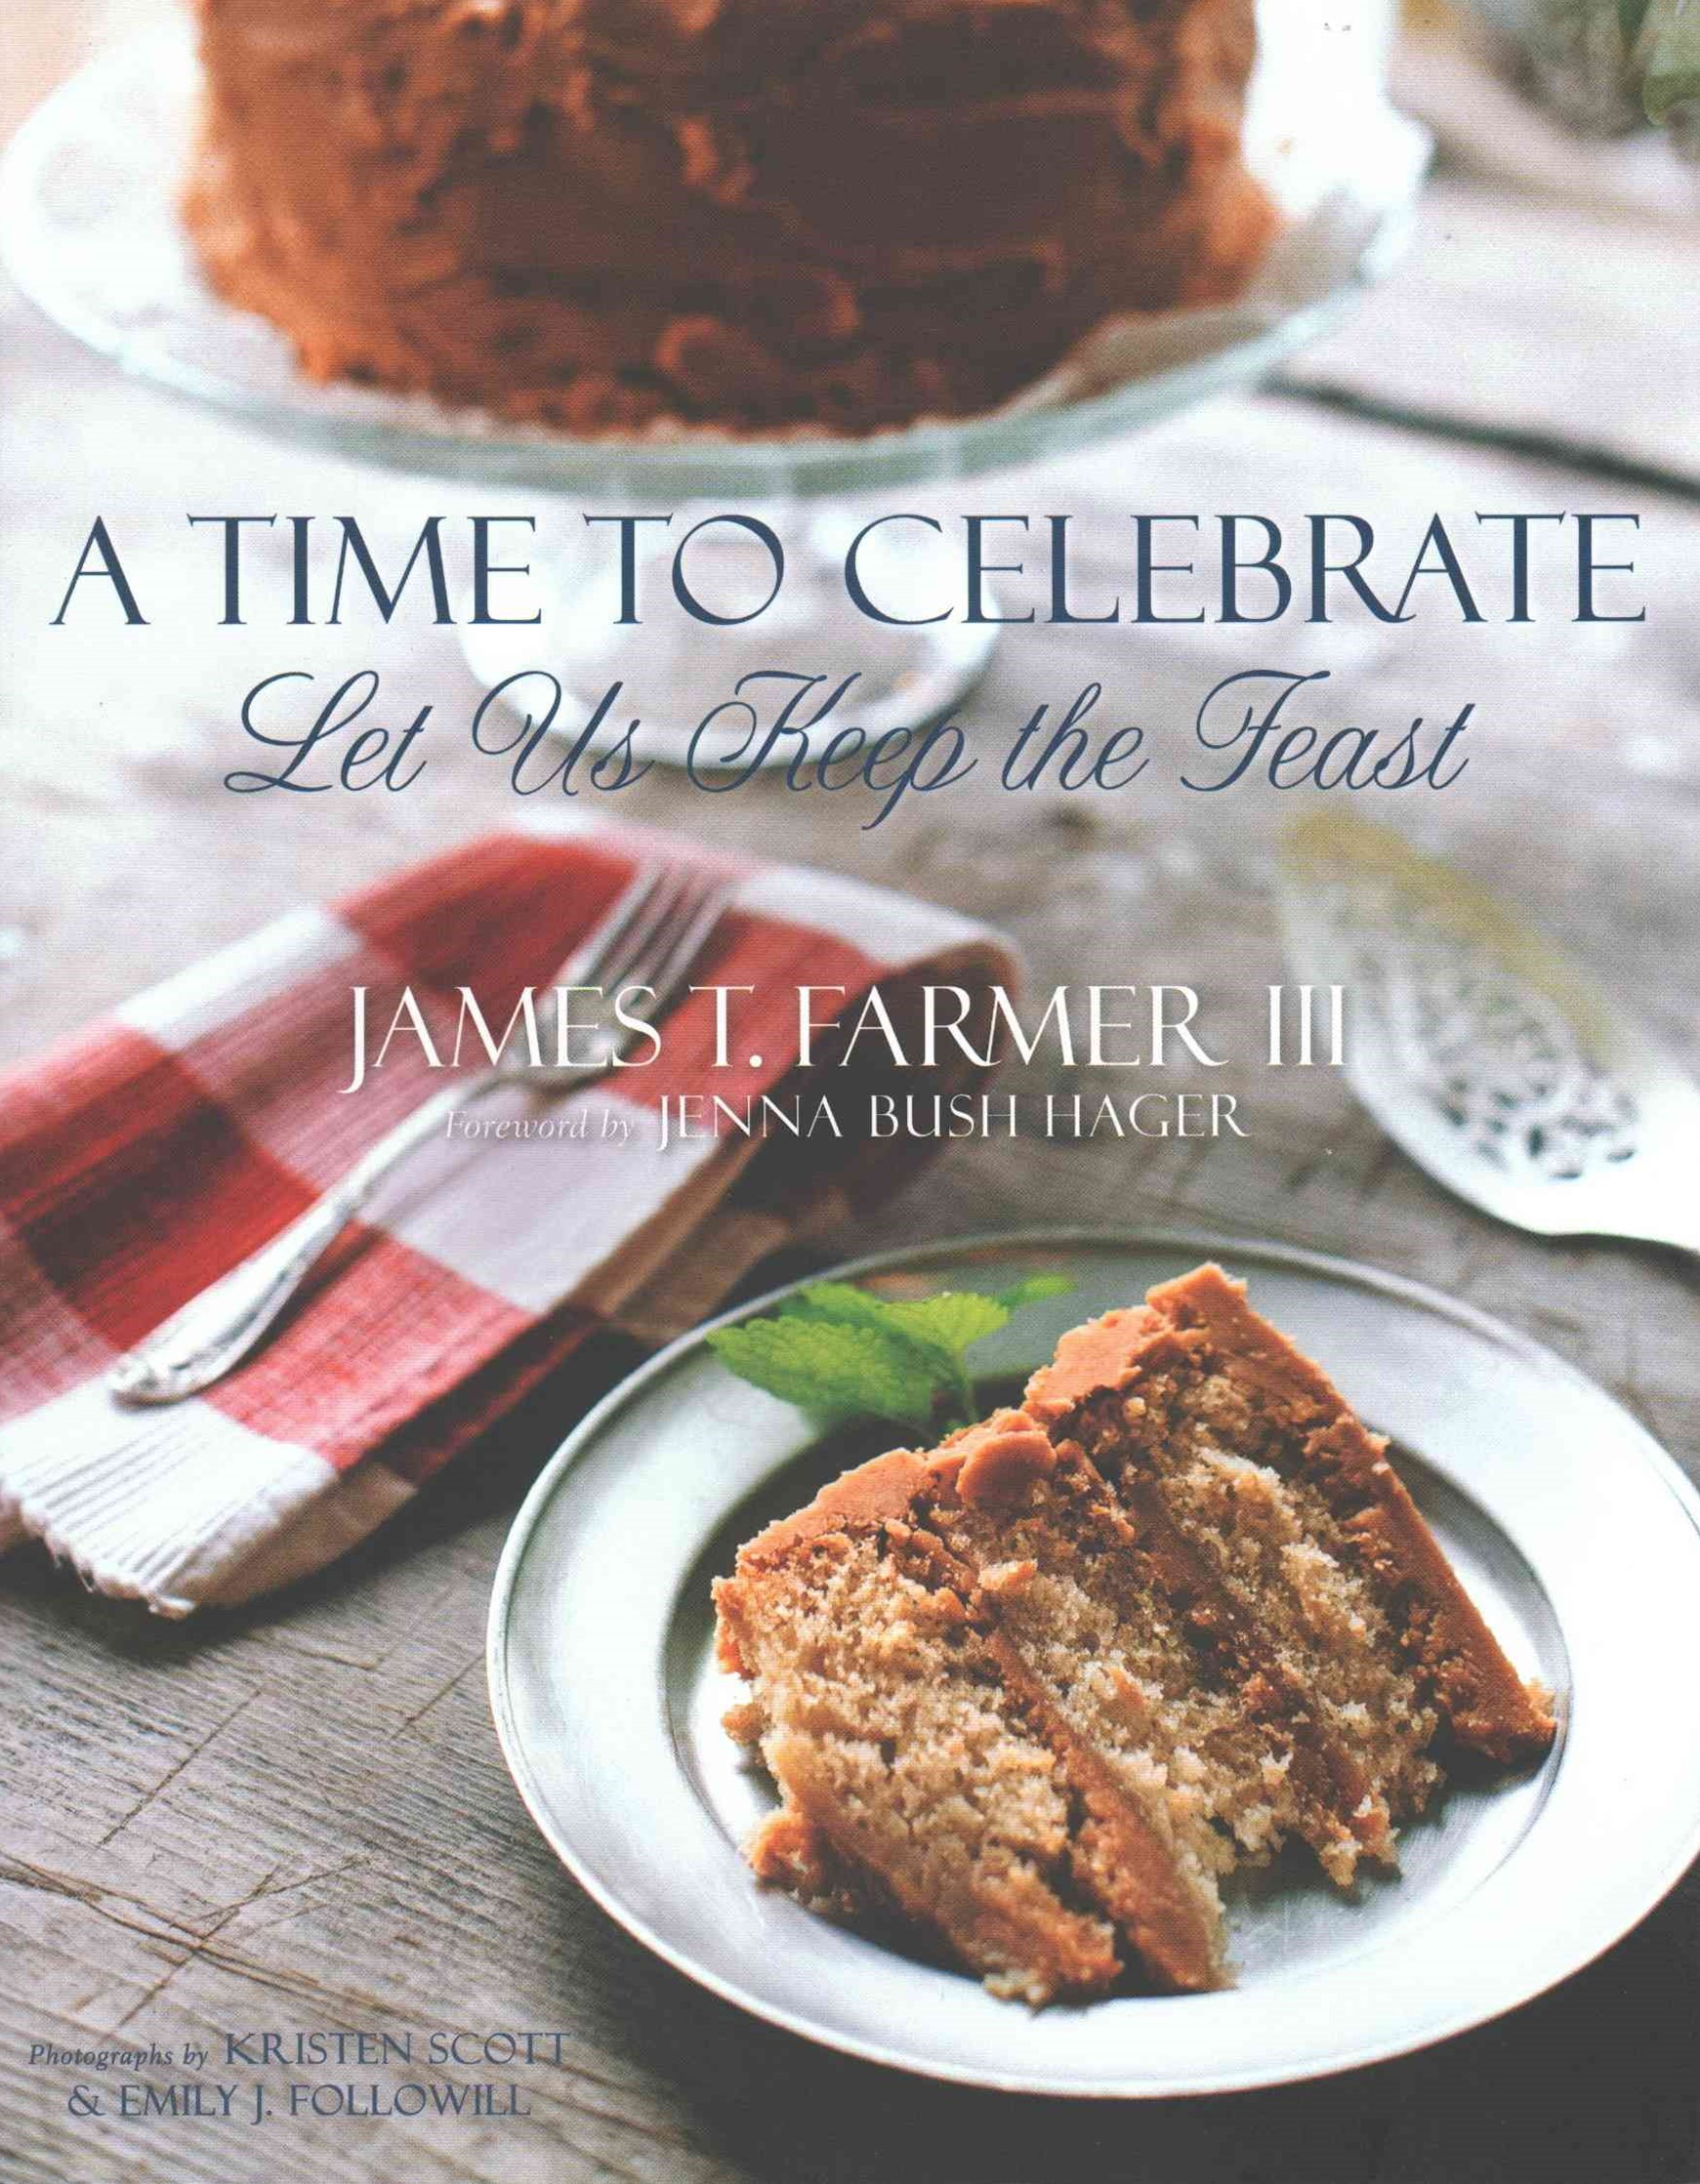 Time to Celebrate: Let Us Keep the Feast